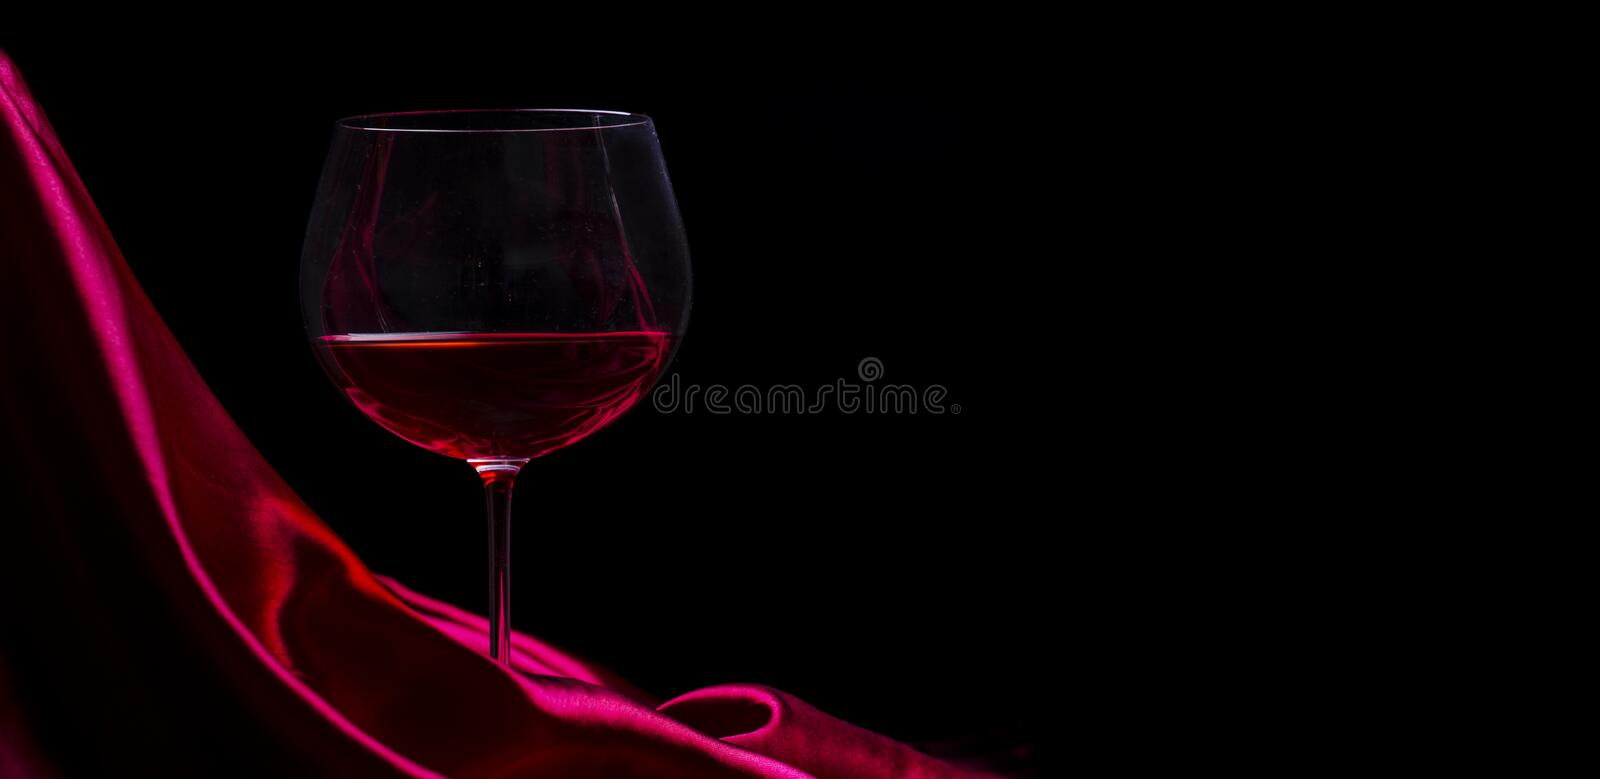 Glass of red wine on red silk against black background. Wine list design background royalty free stock image